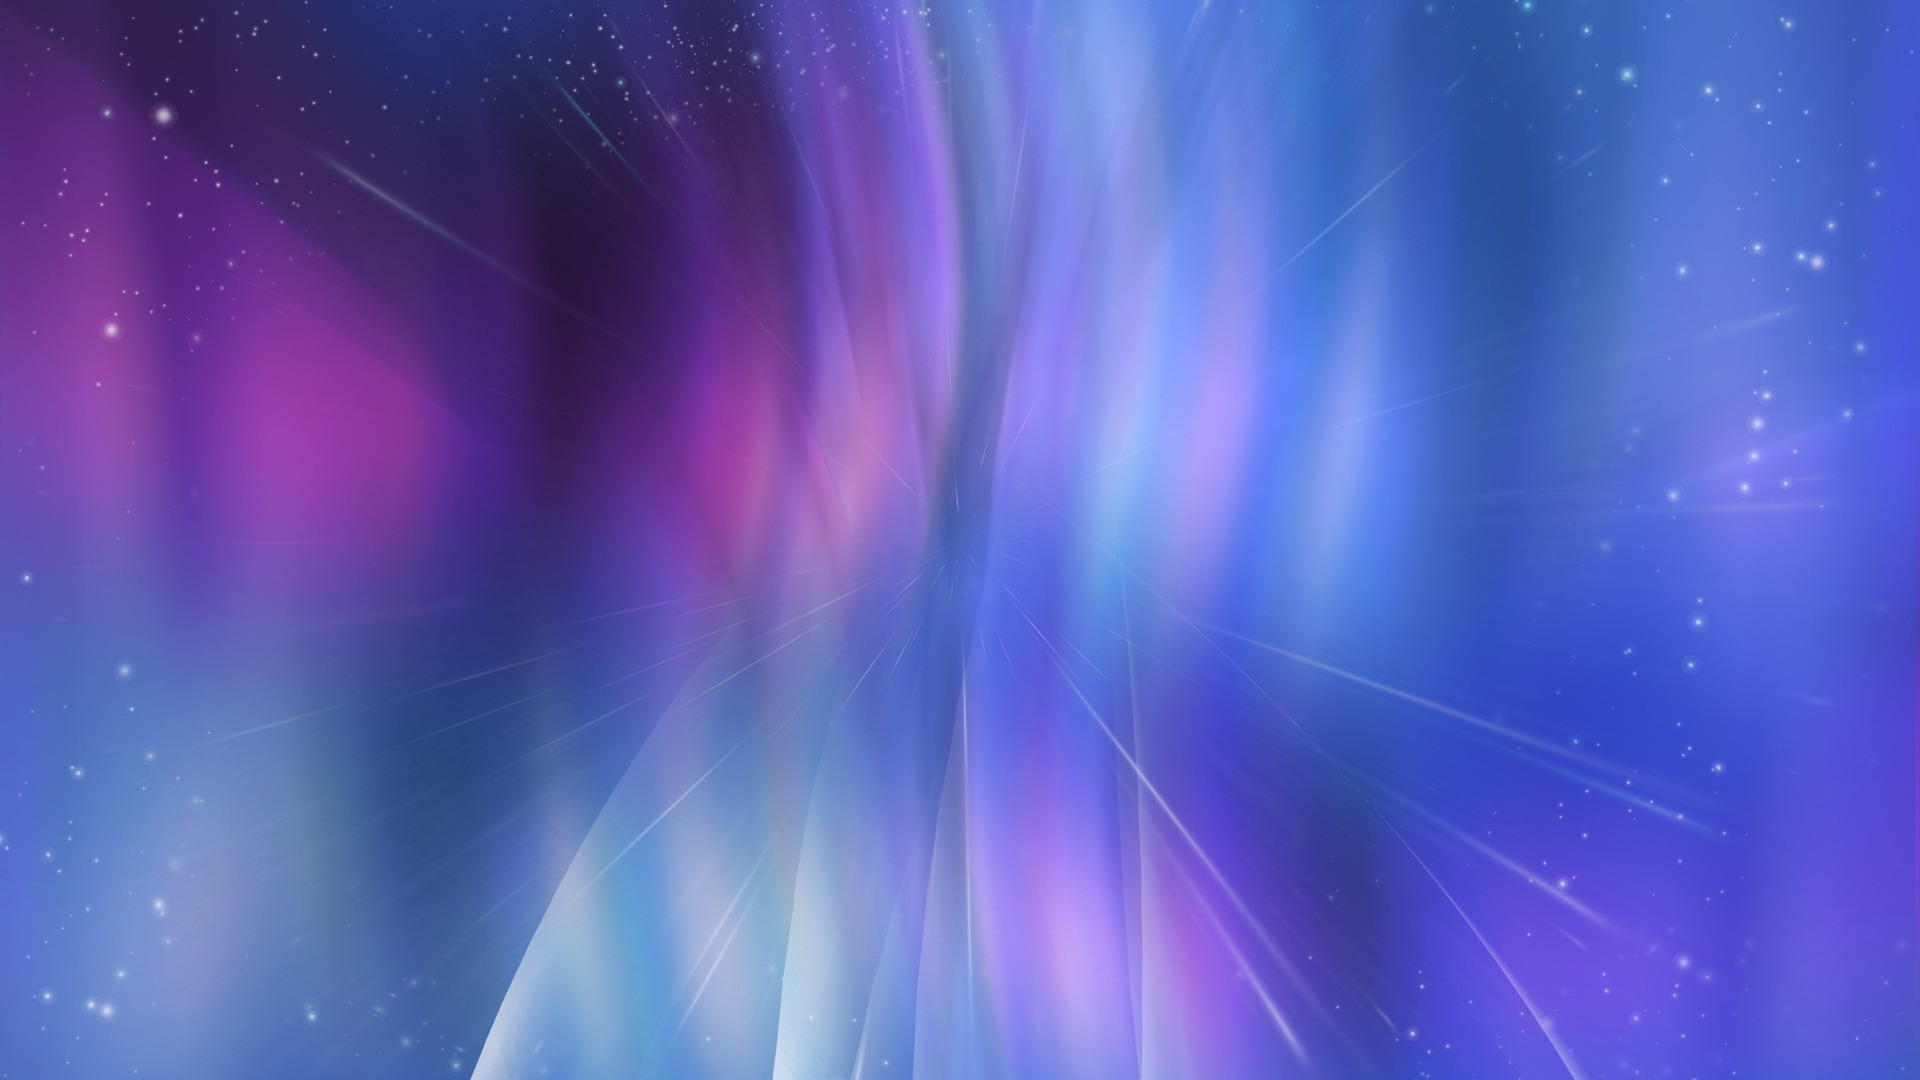 Blue Wallpapers, Pictures, Images